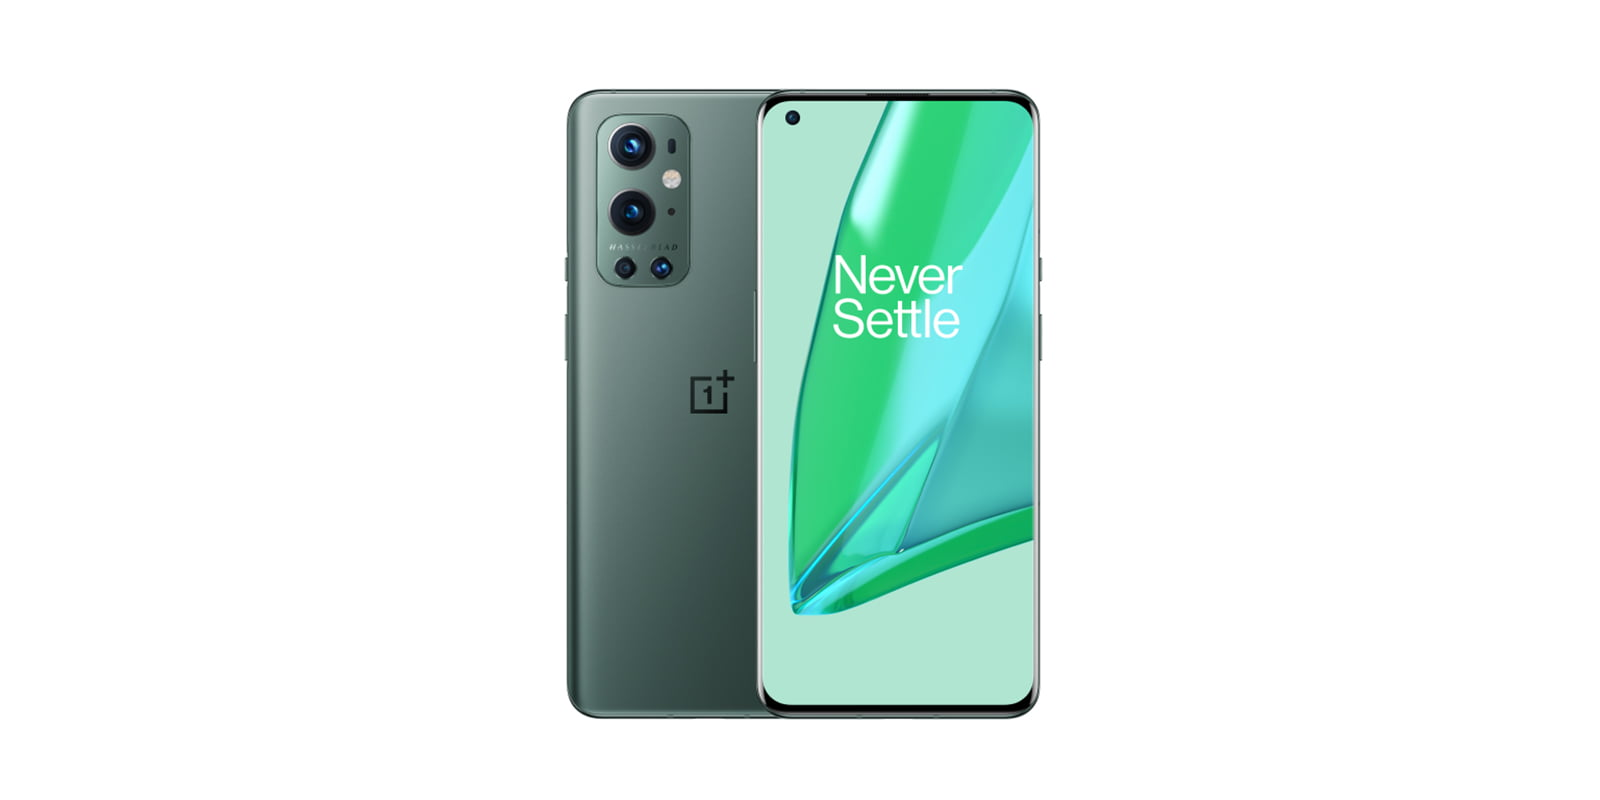 OnePlus 9 pro in green